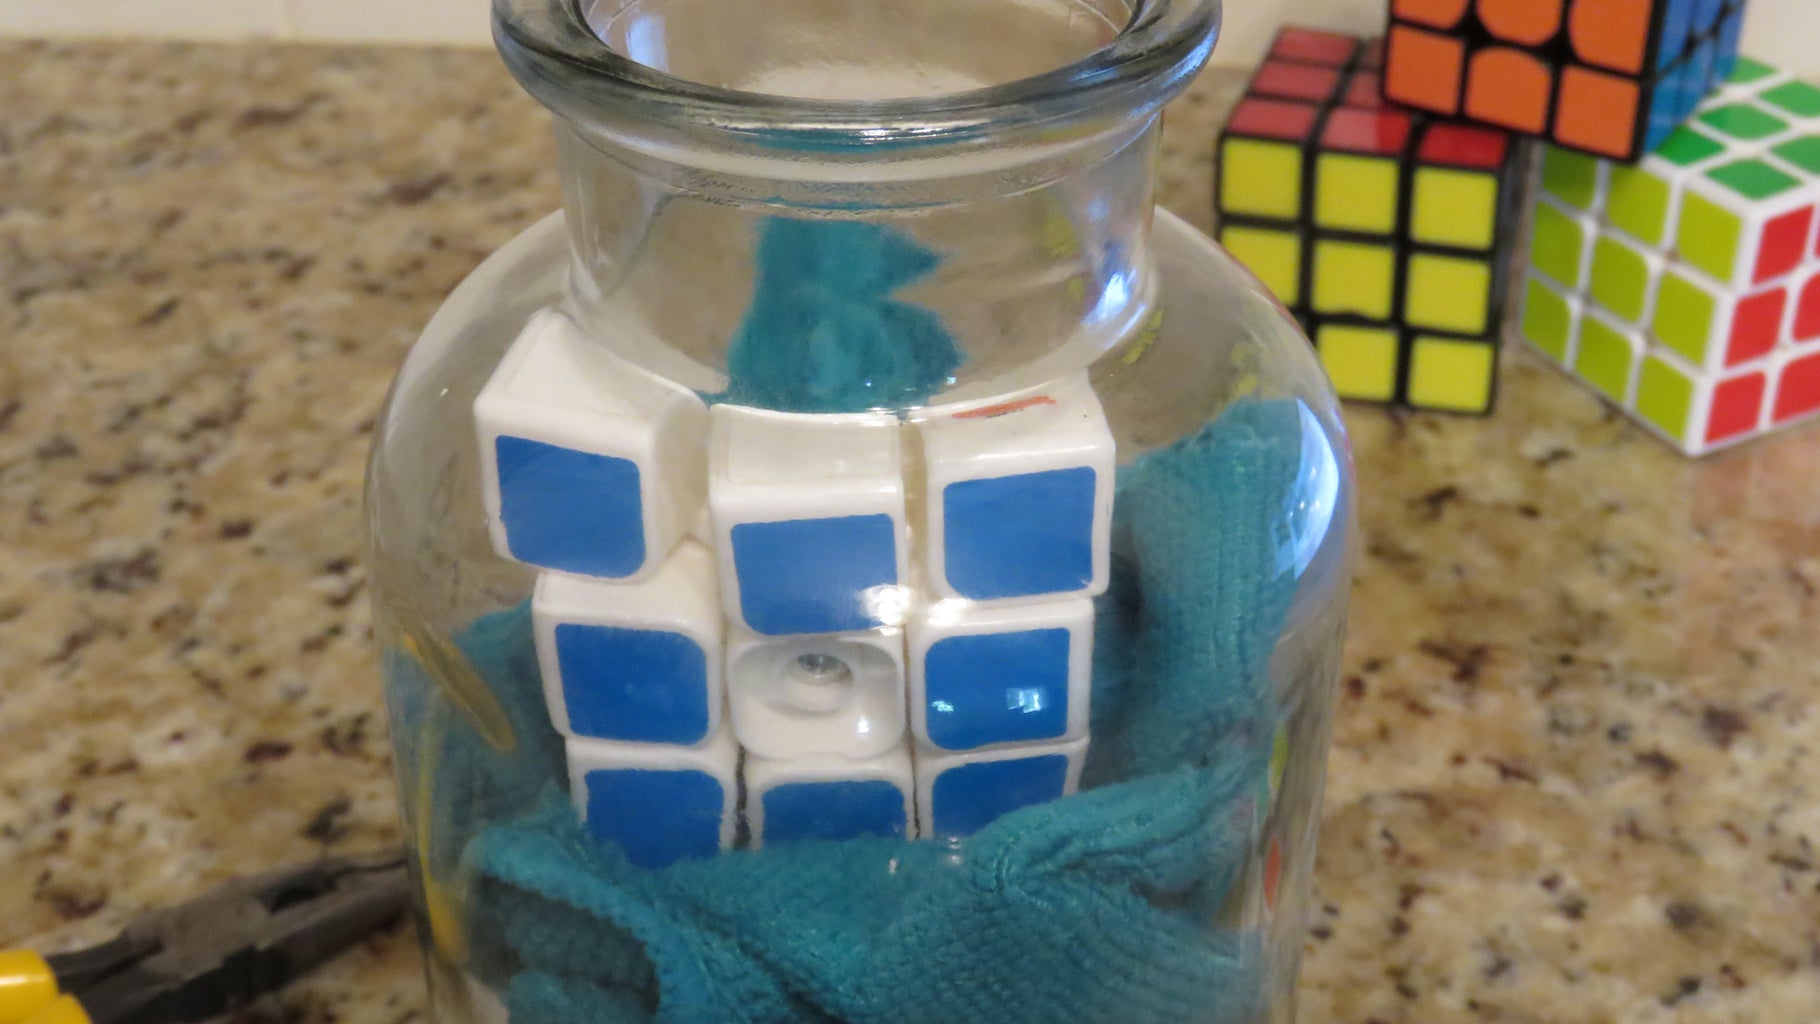 Building You Cube!